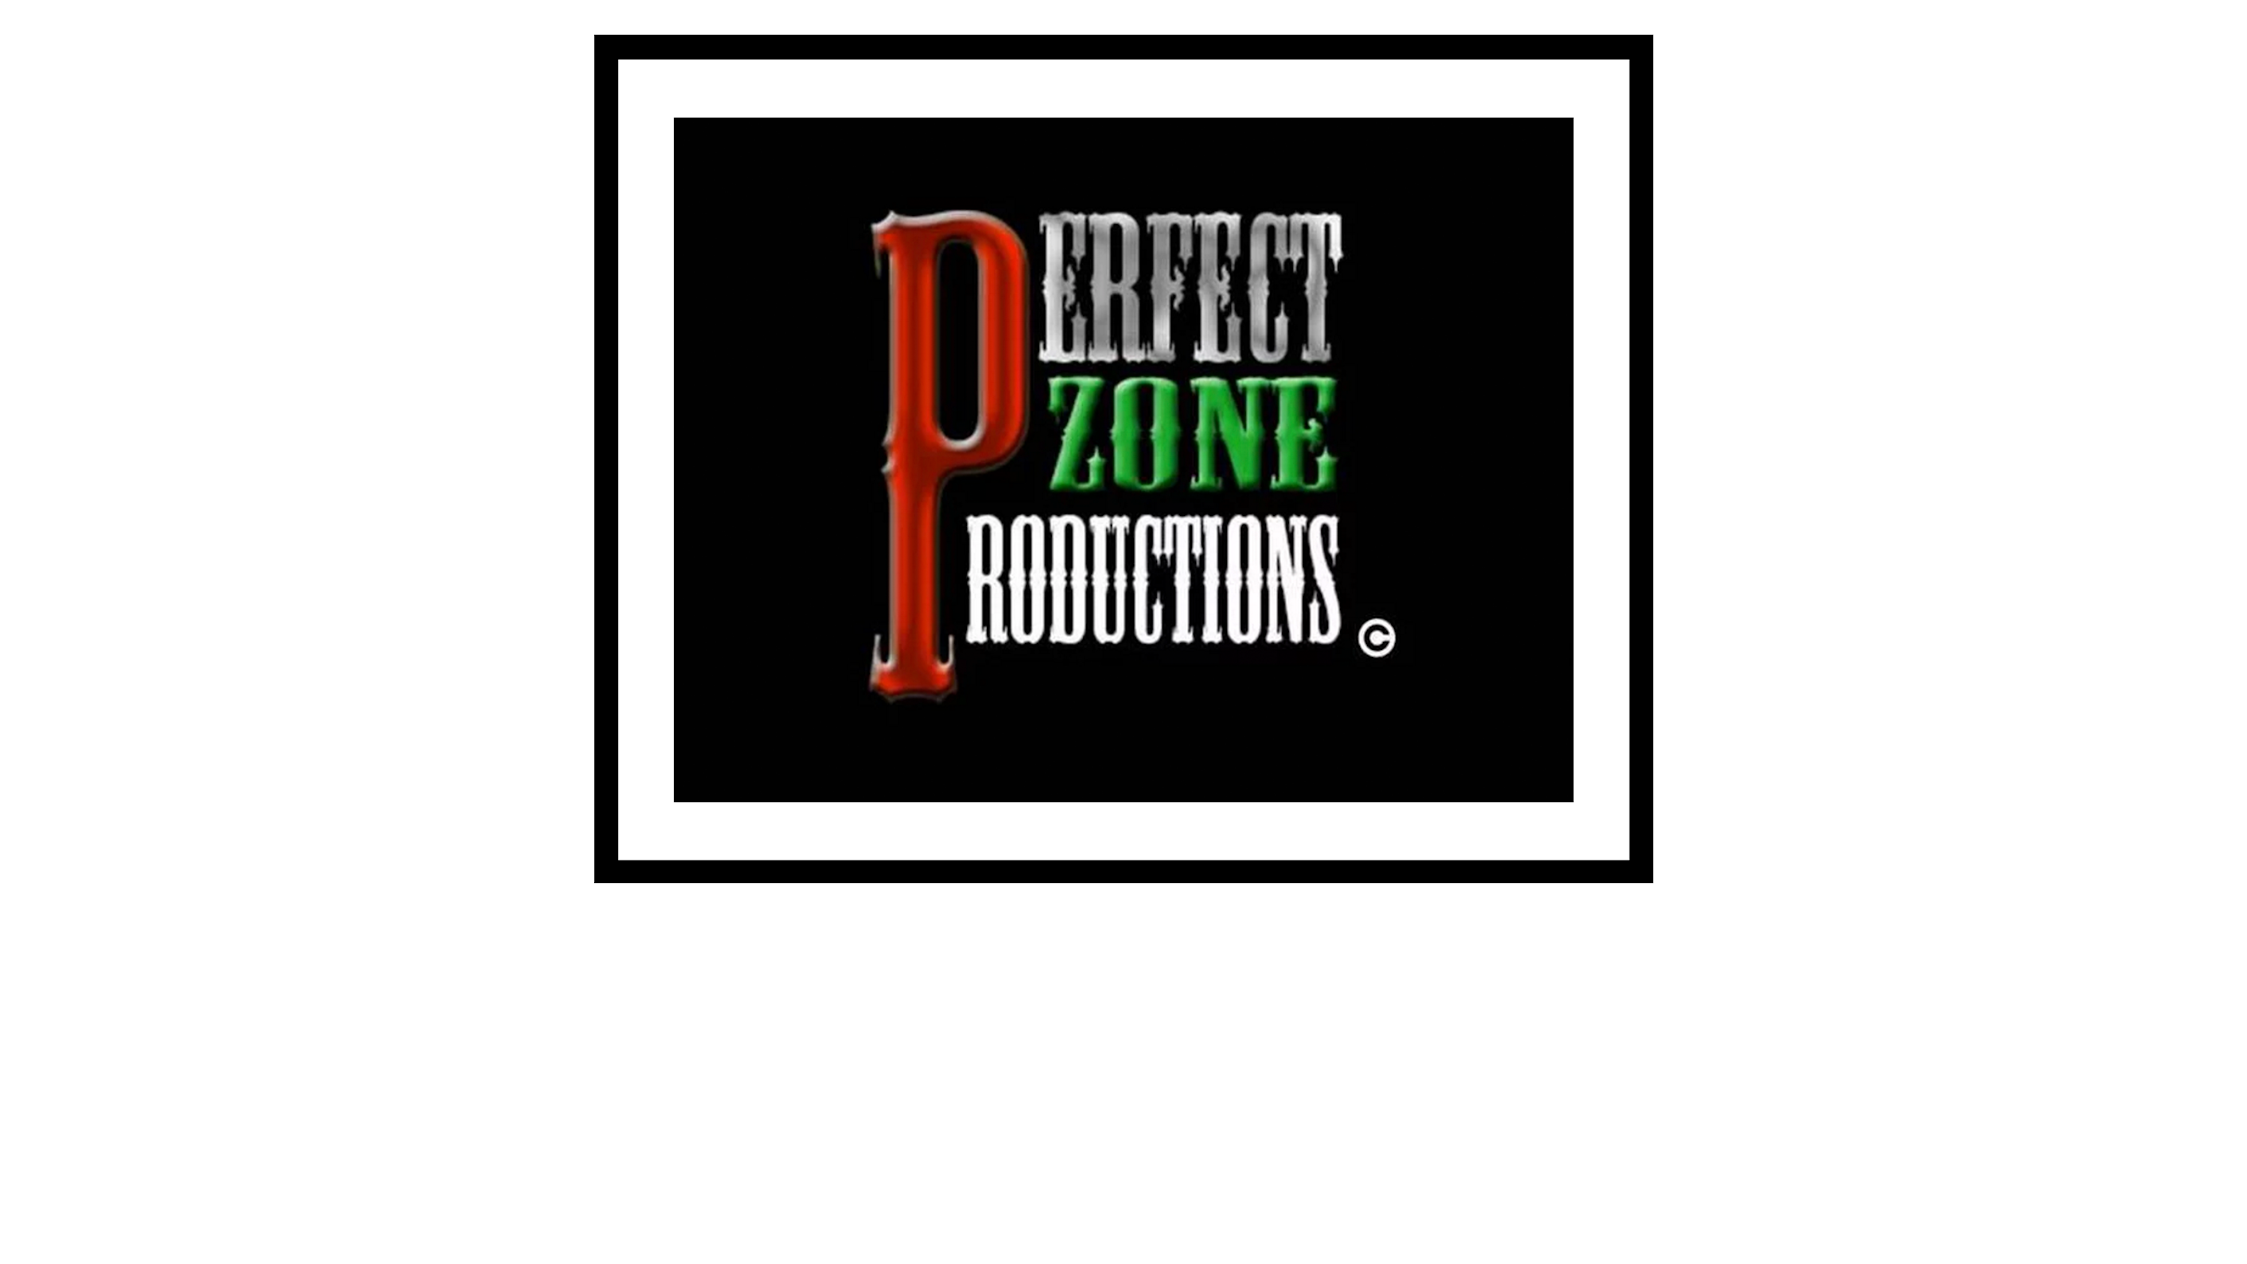 Perfect Zone Productions